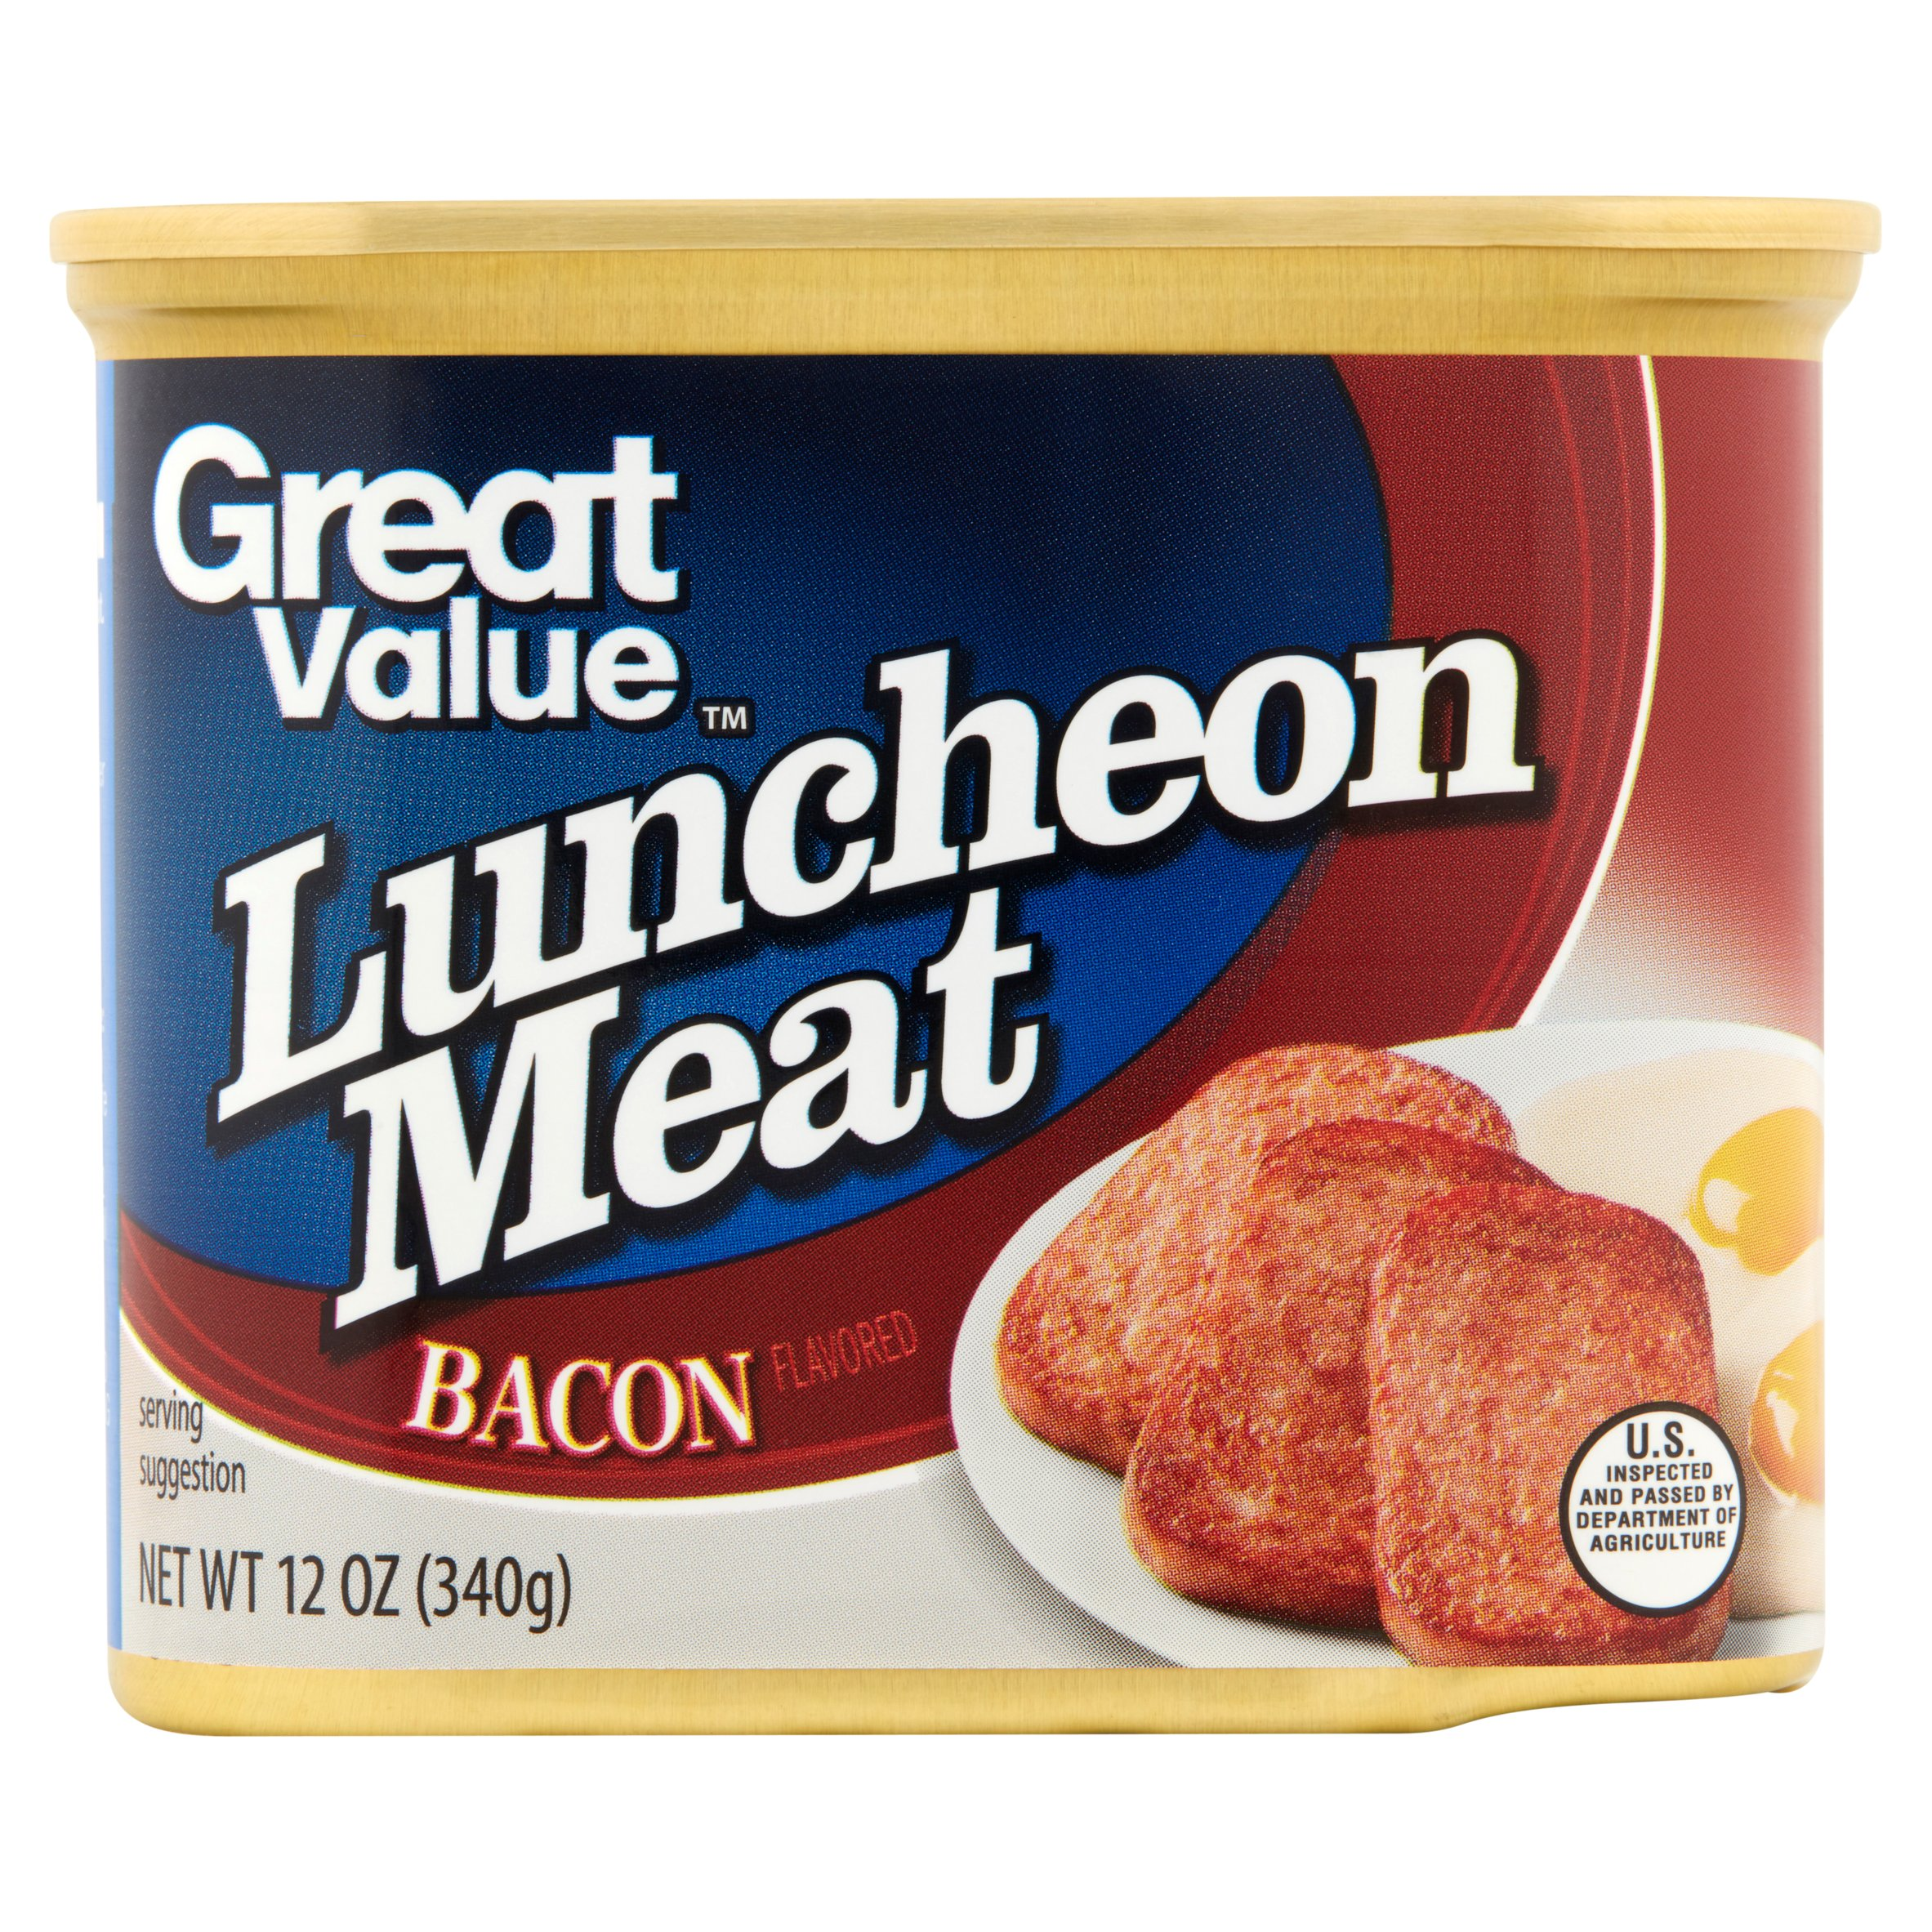 Great Value Luncheon Meat, Bacon, 12 oz by Wal-Mart Stores, Inc.